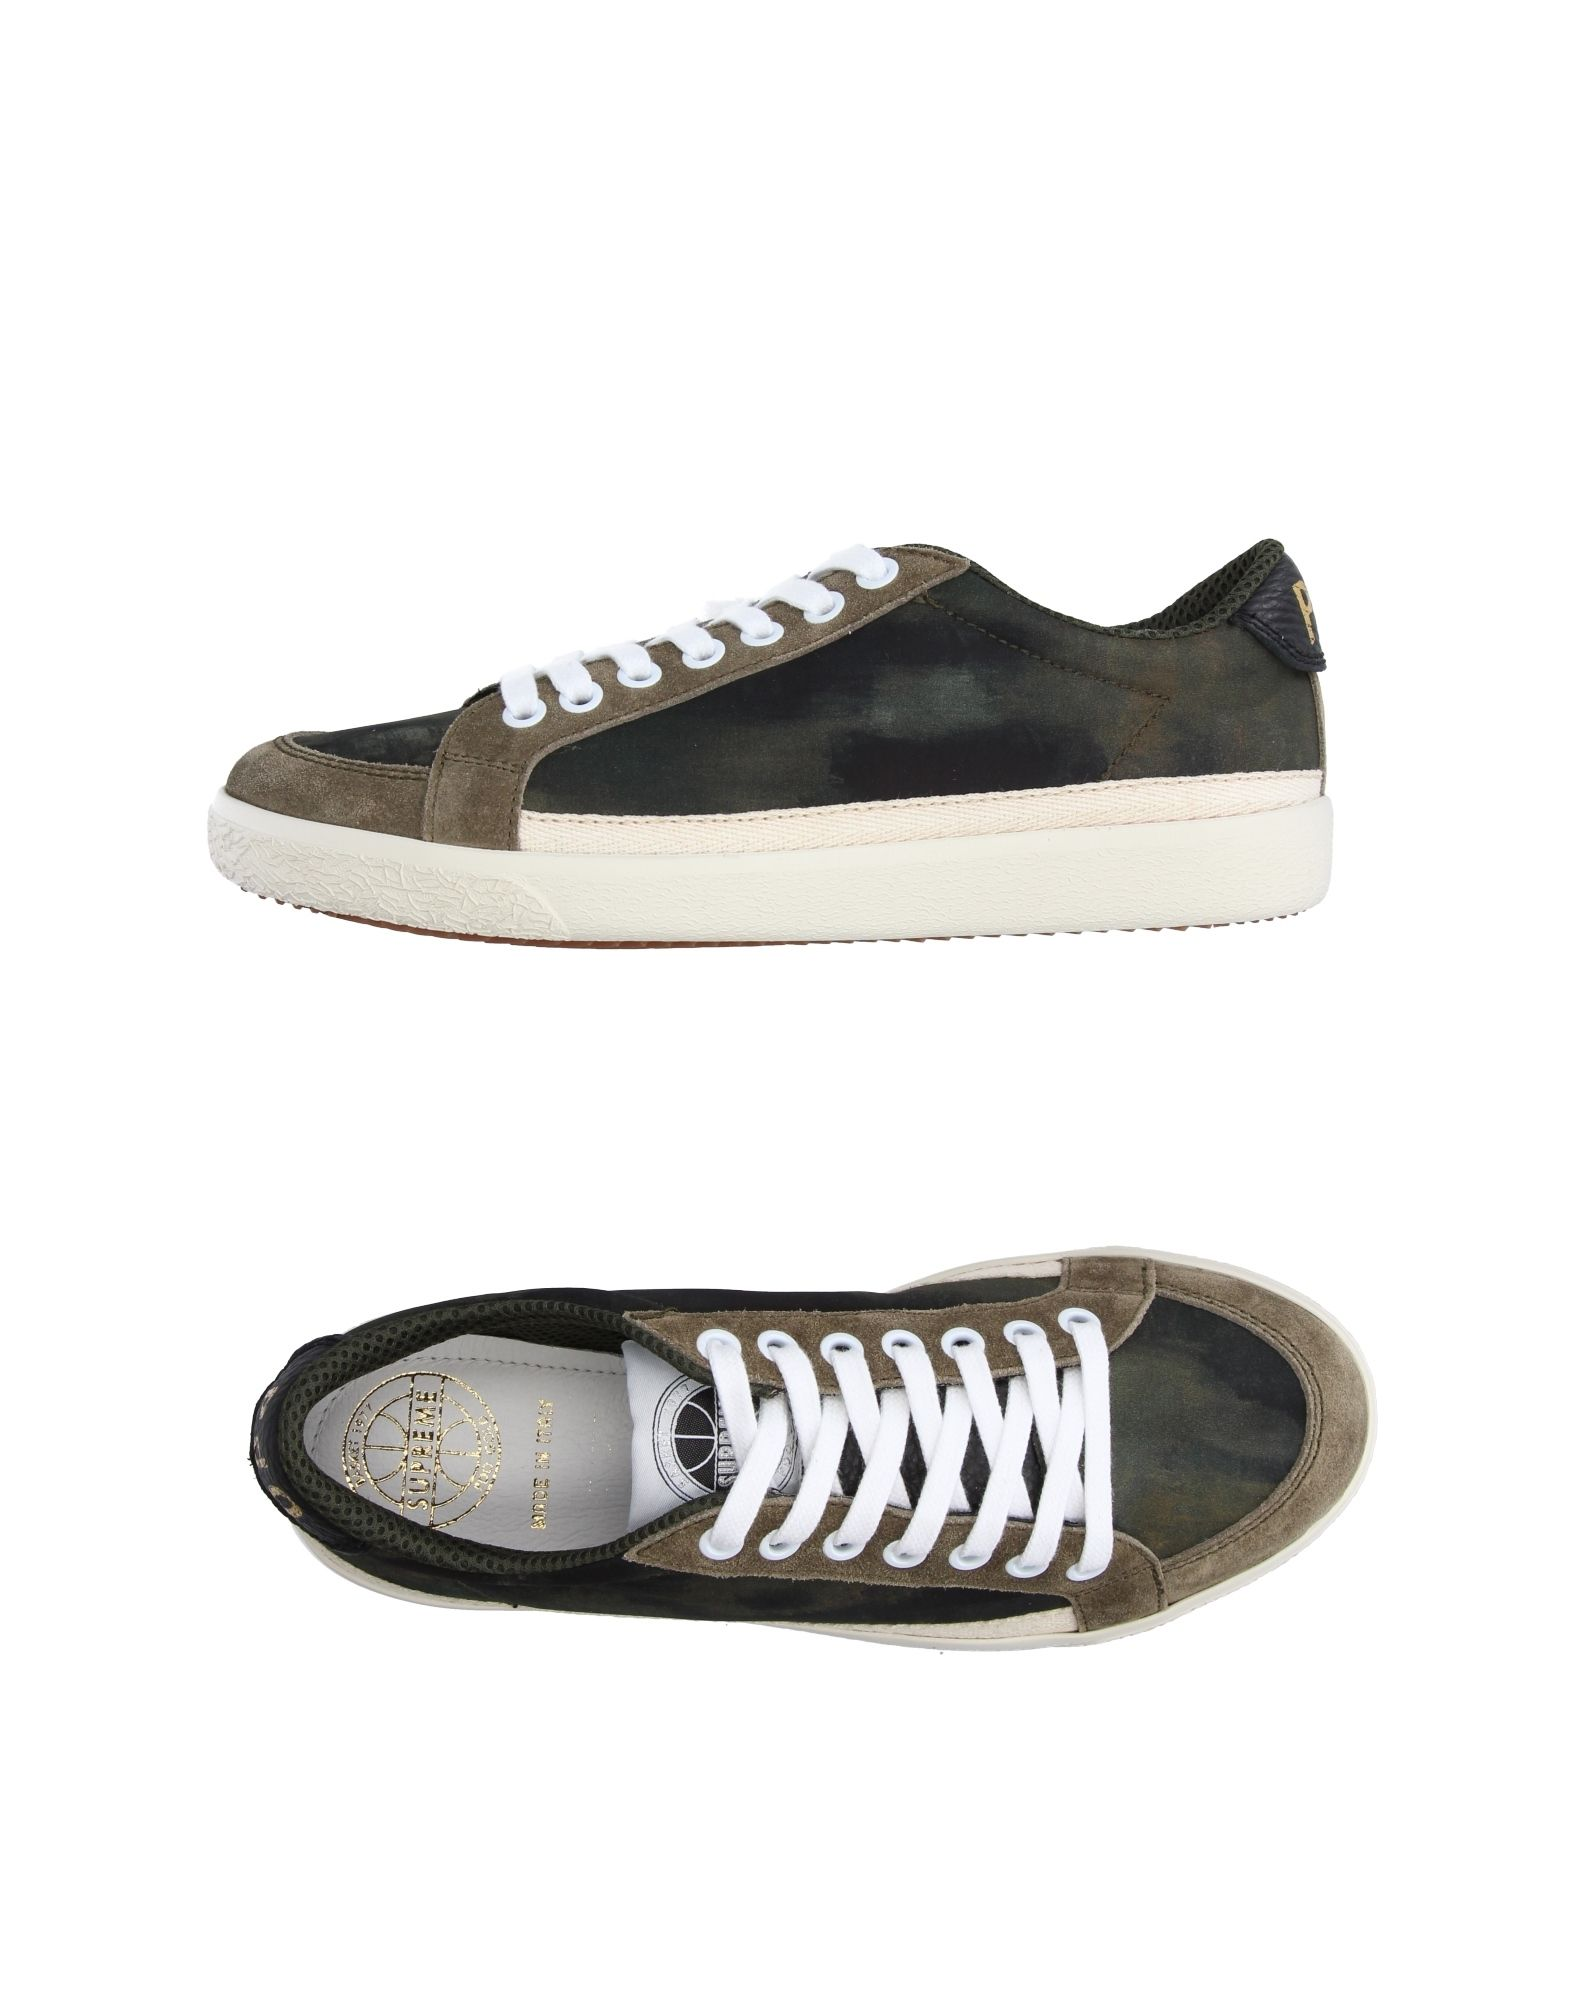 Pantofola D'oro Sneakers - Women Pantofola D'oro Sneakers online on on on  United Kingdom - 11228216DP 3a096d